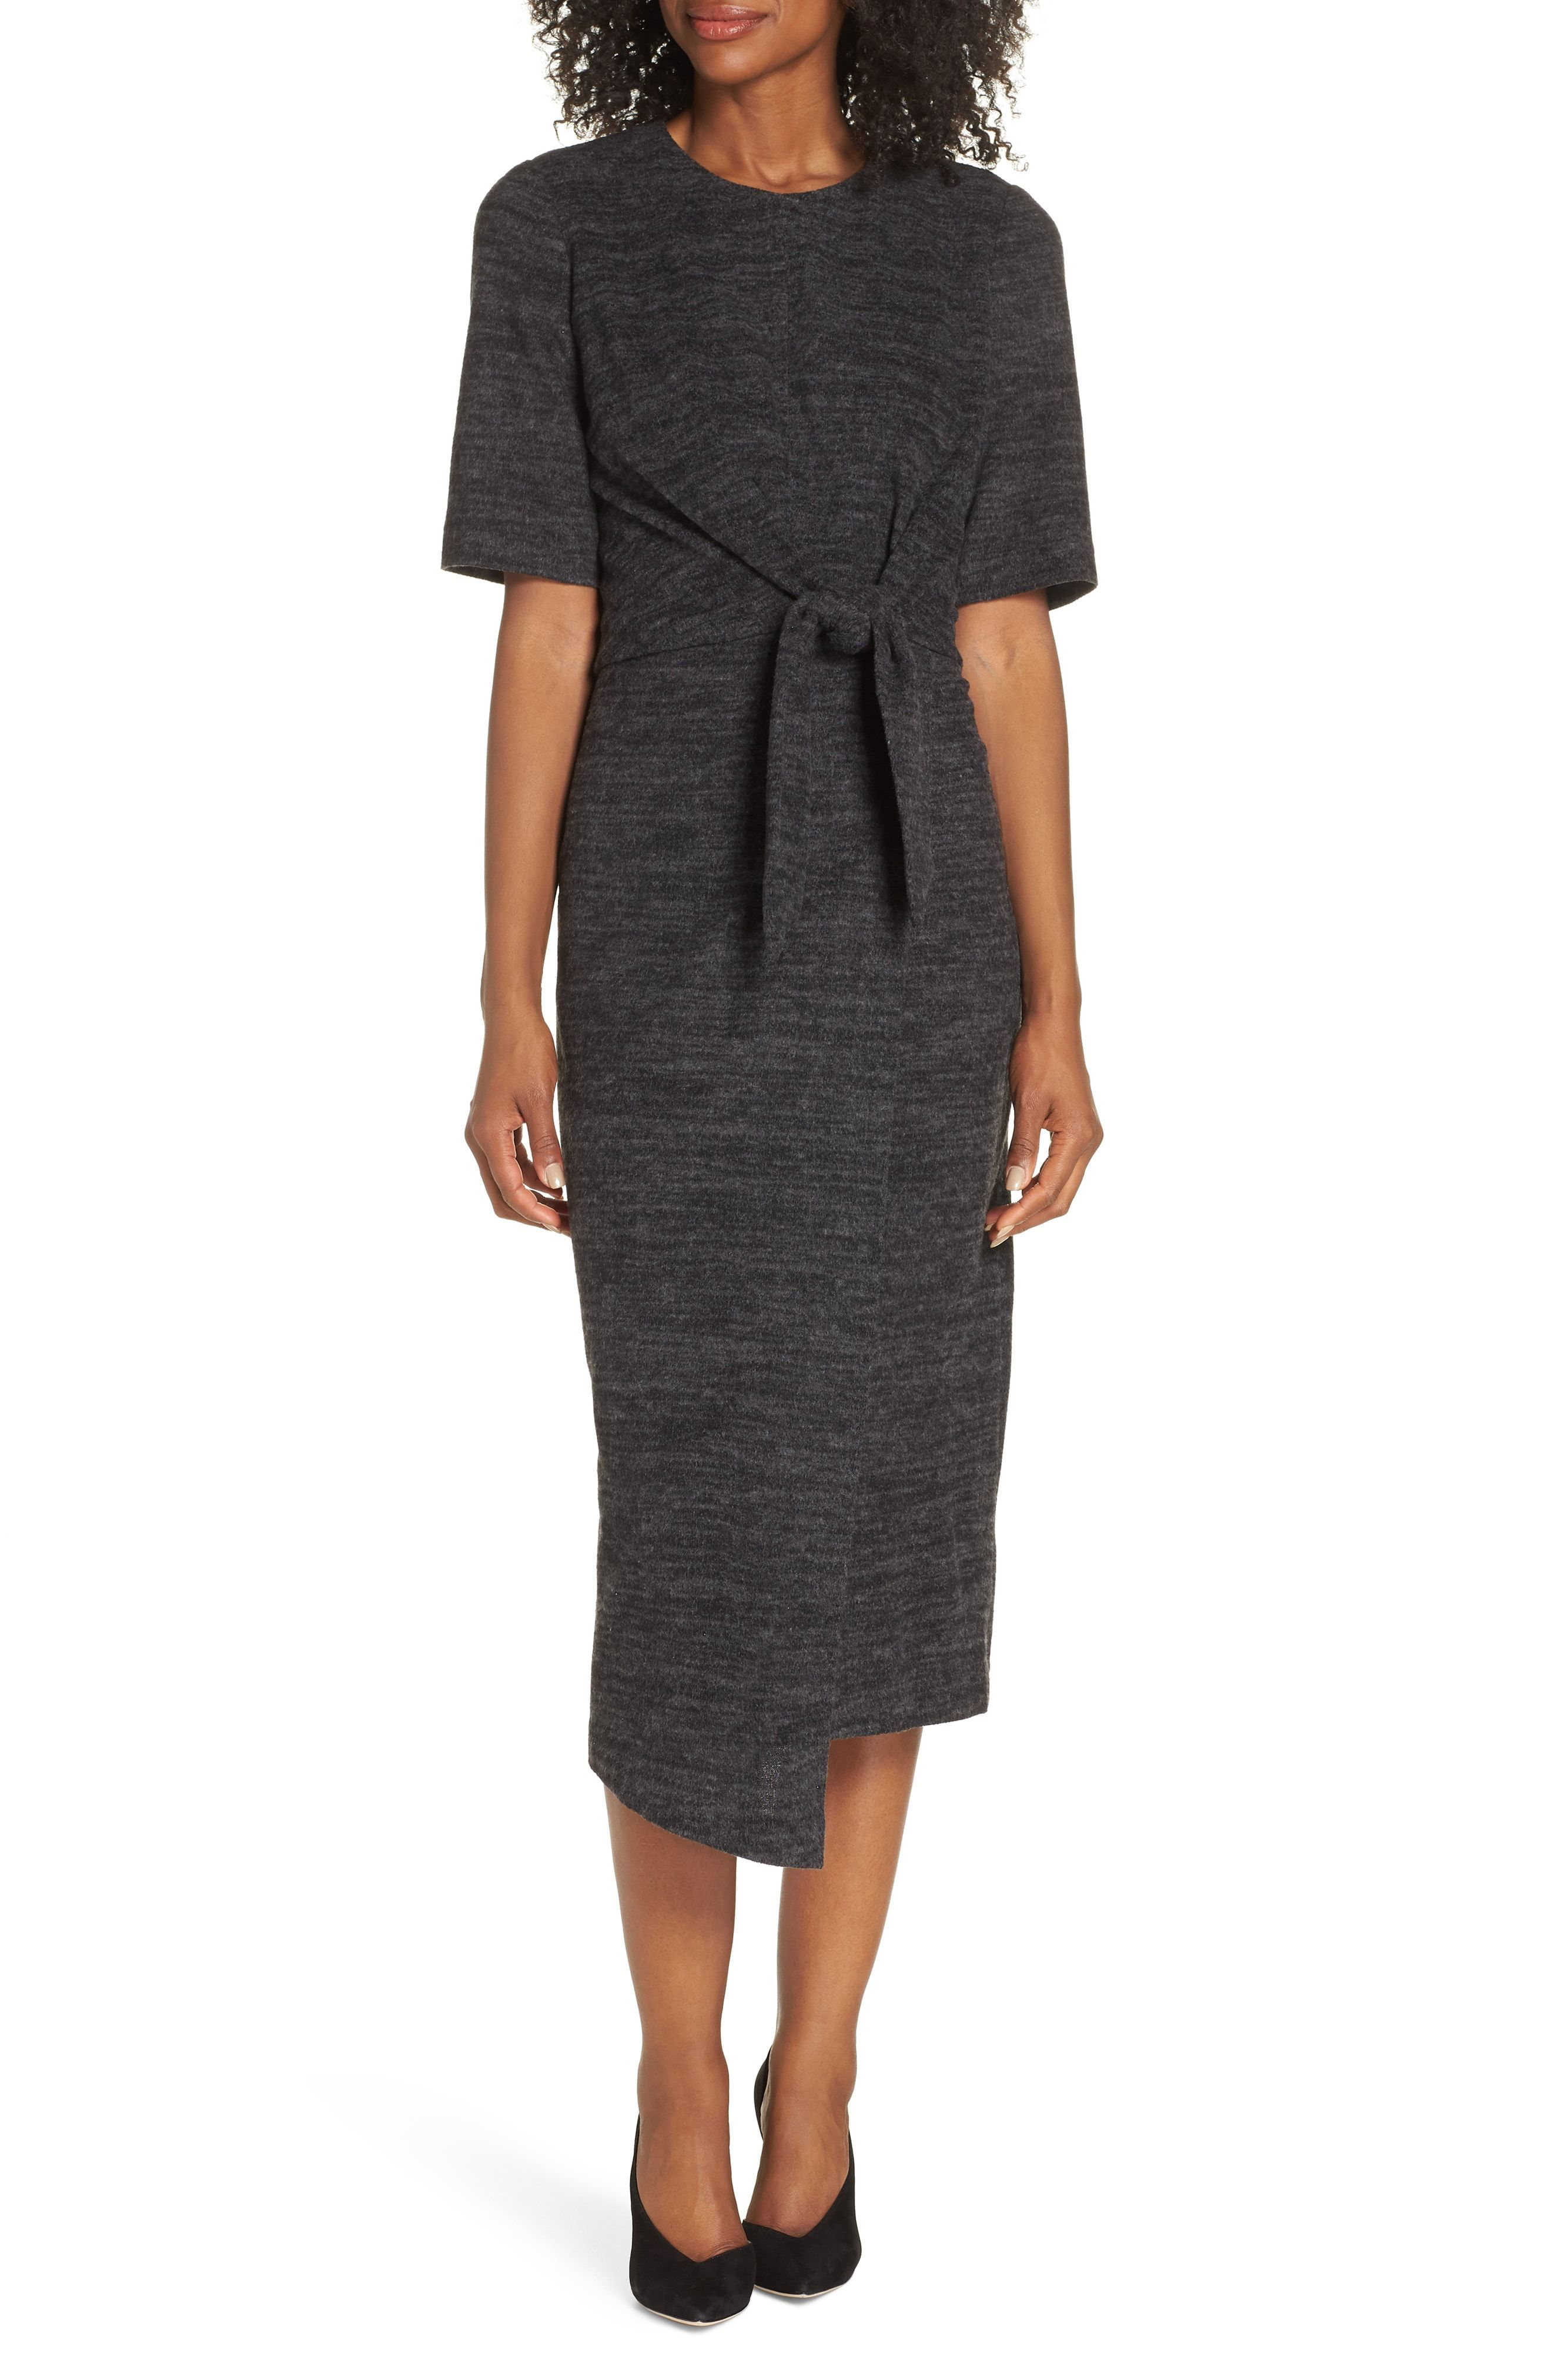 be129ce157b9 Maggy London Tie Front Midi Dress available at  Nordstrom Love this style  and the color is perfect for work!